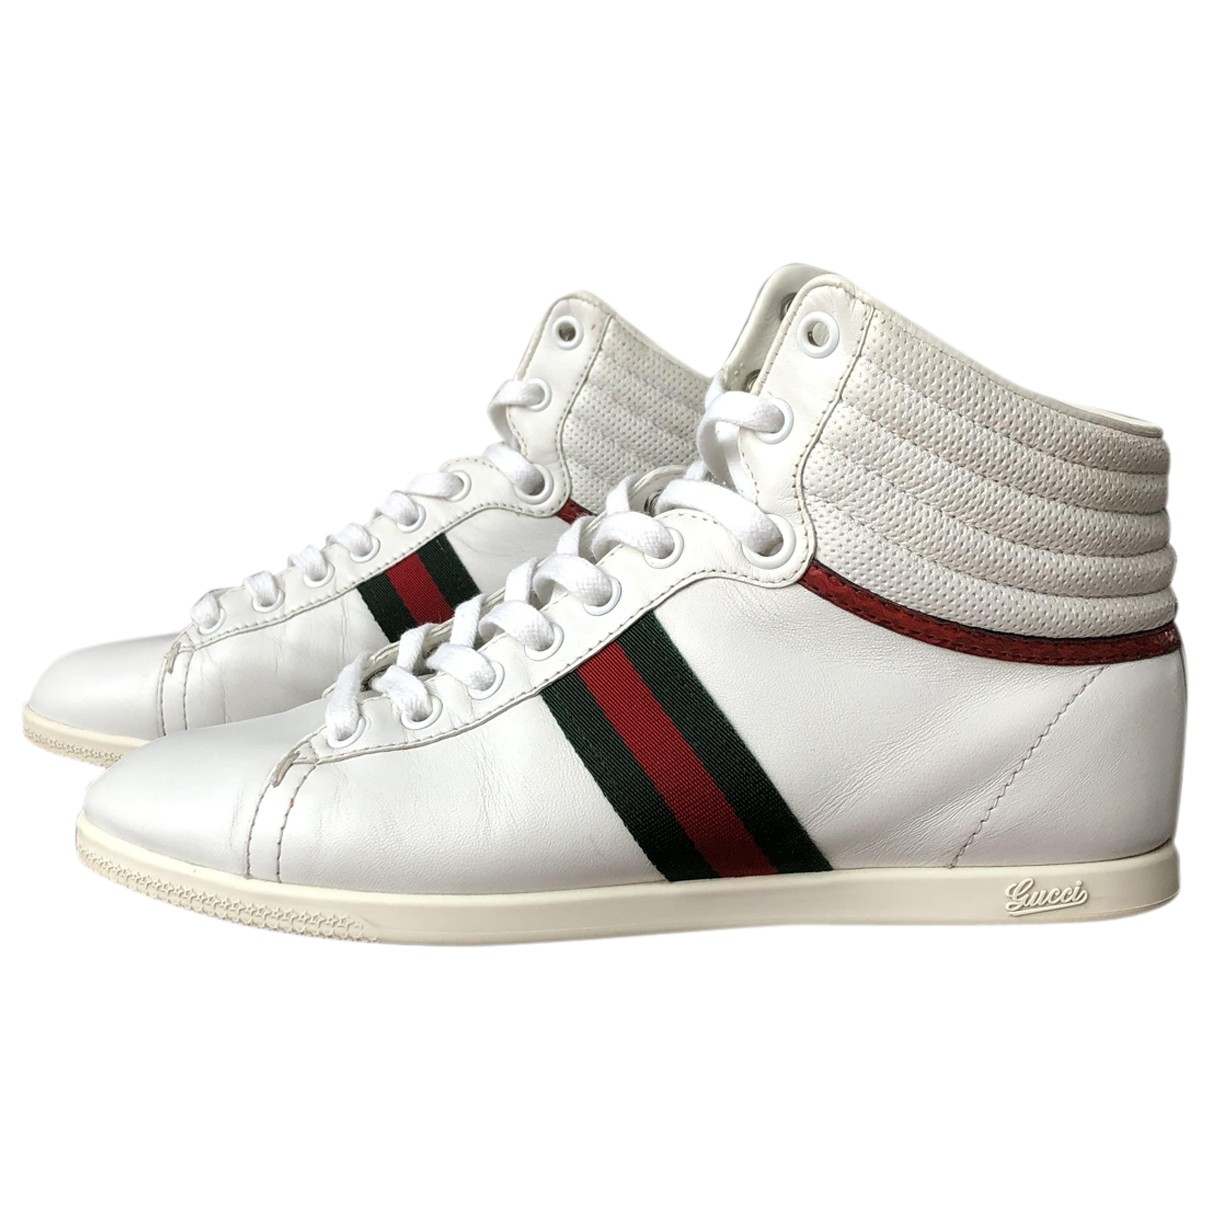 Gucci \N White Leather Trainers for Women 37 EU